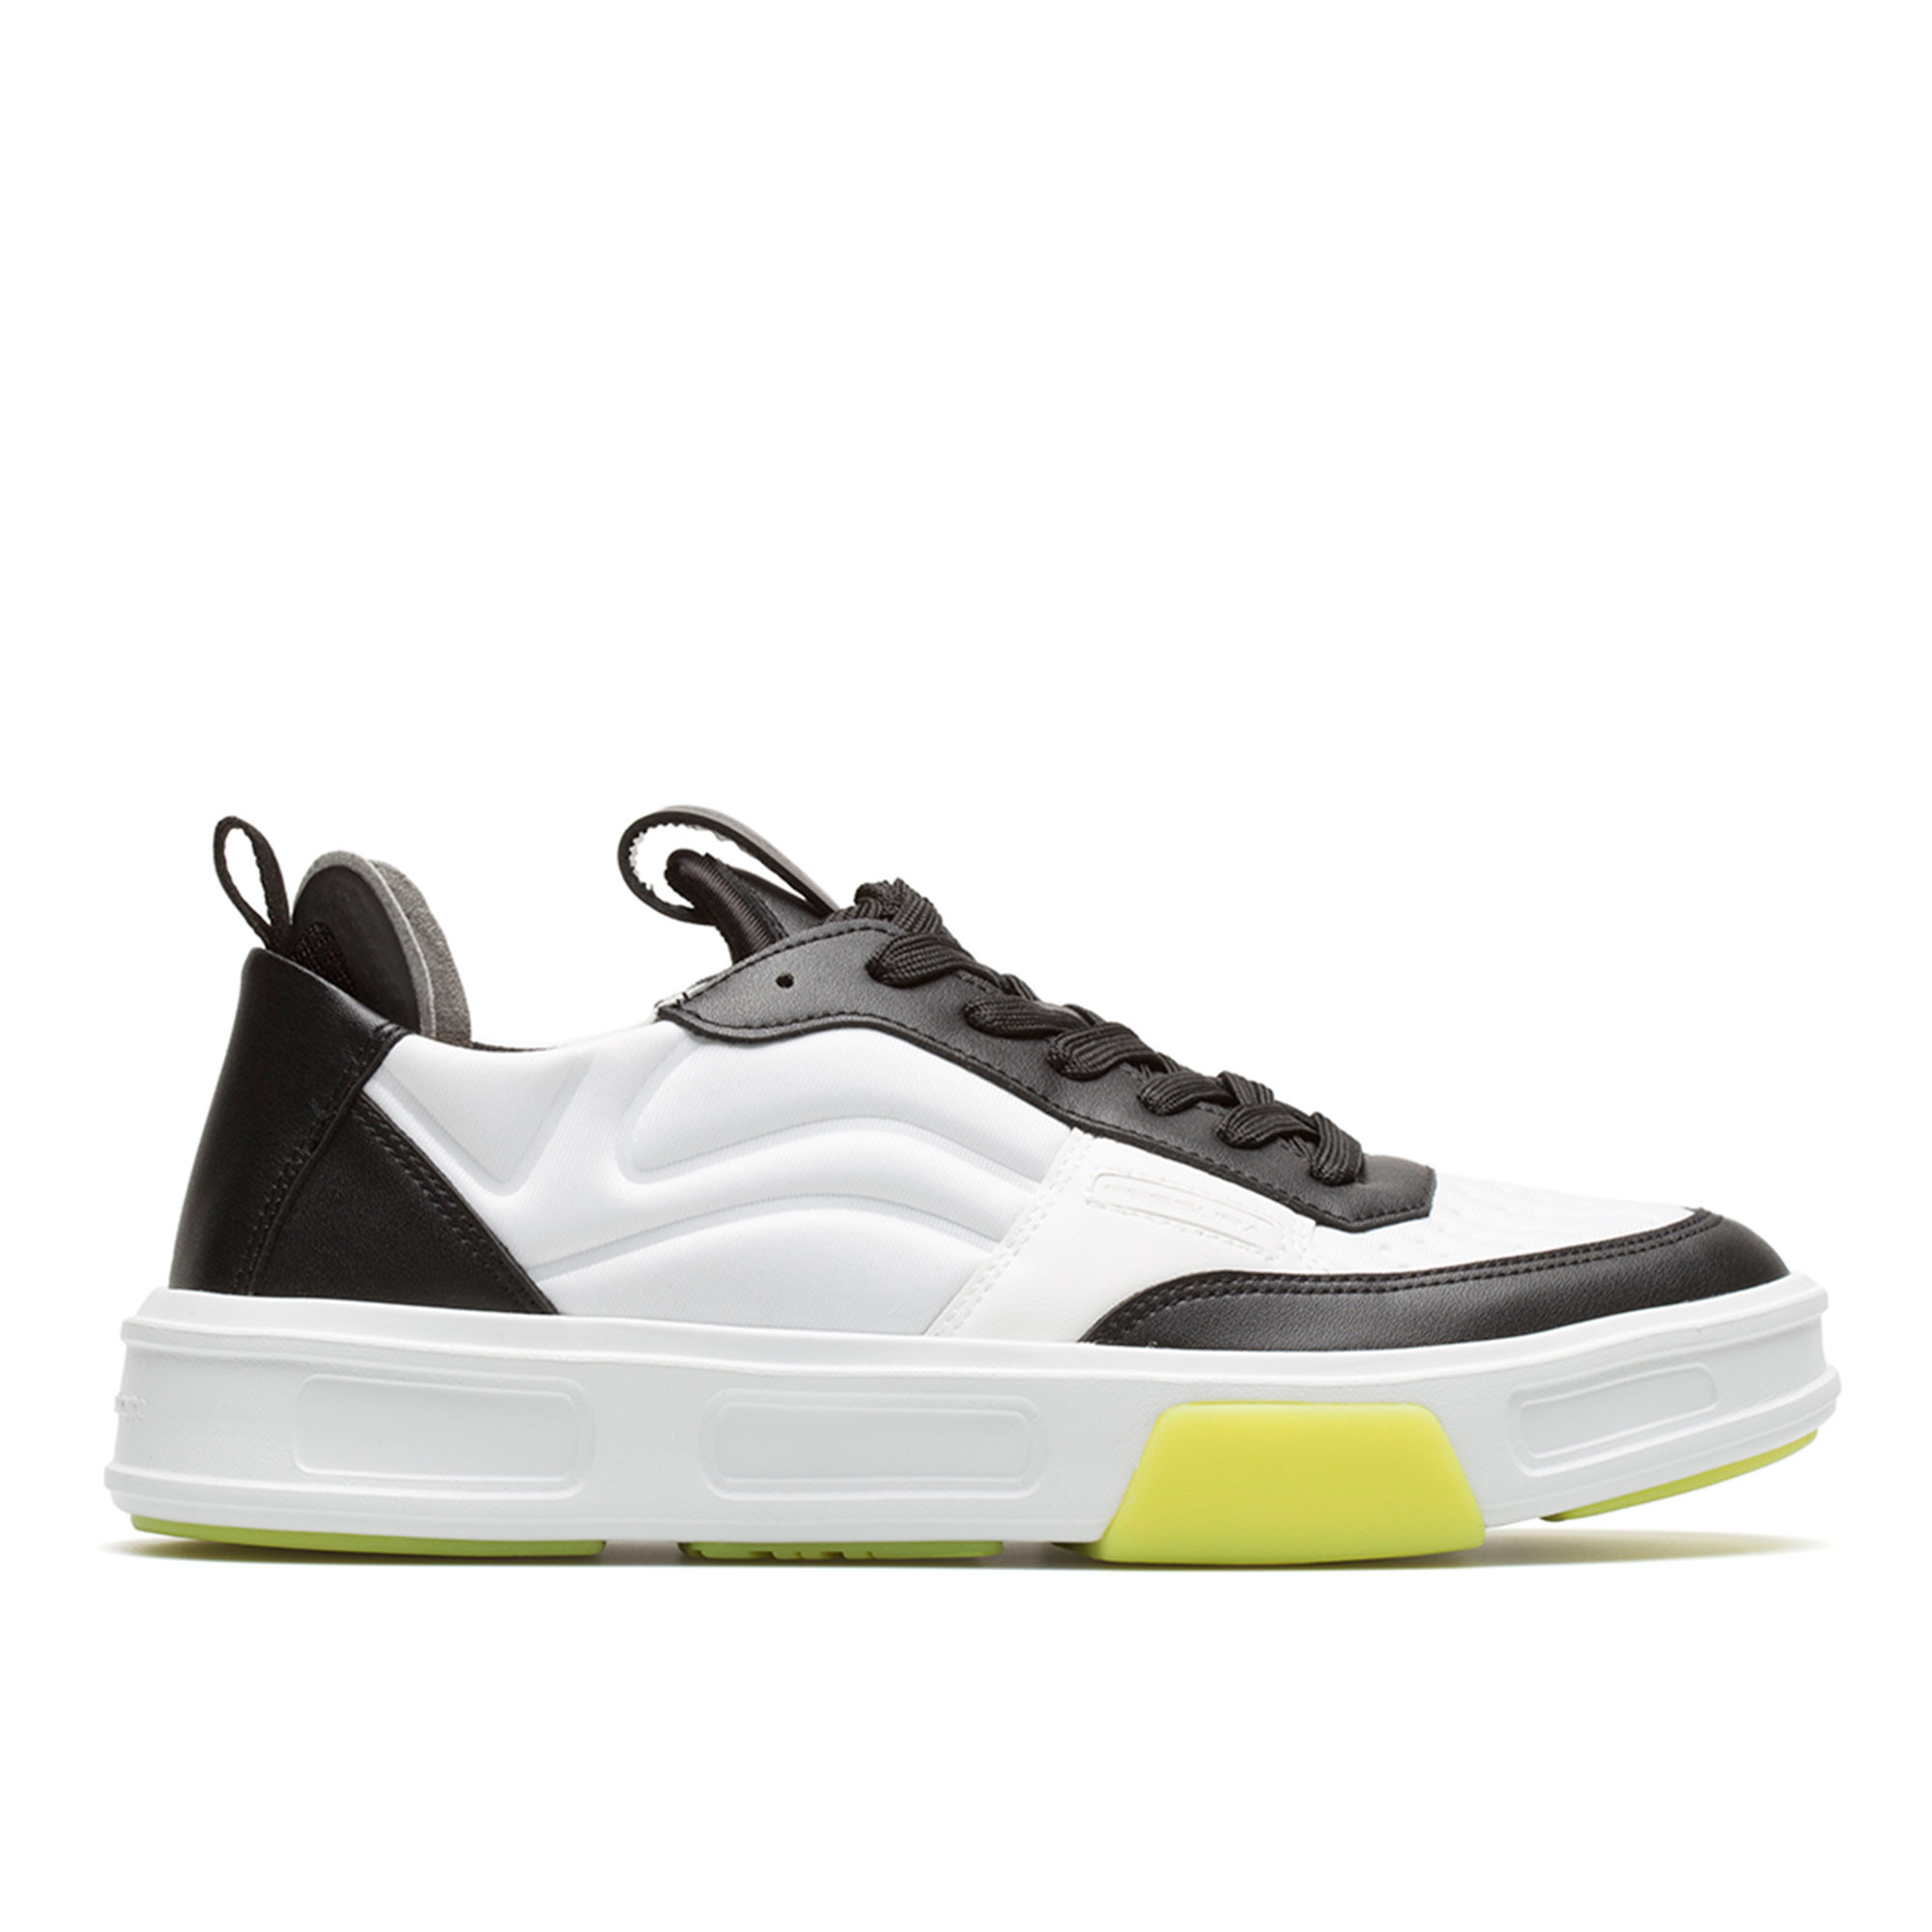 Reflex Basic Black/White White/Fluo